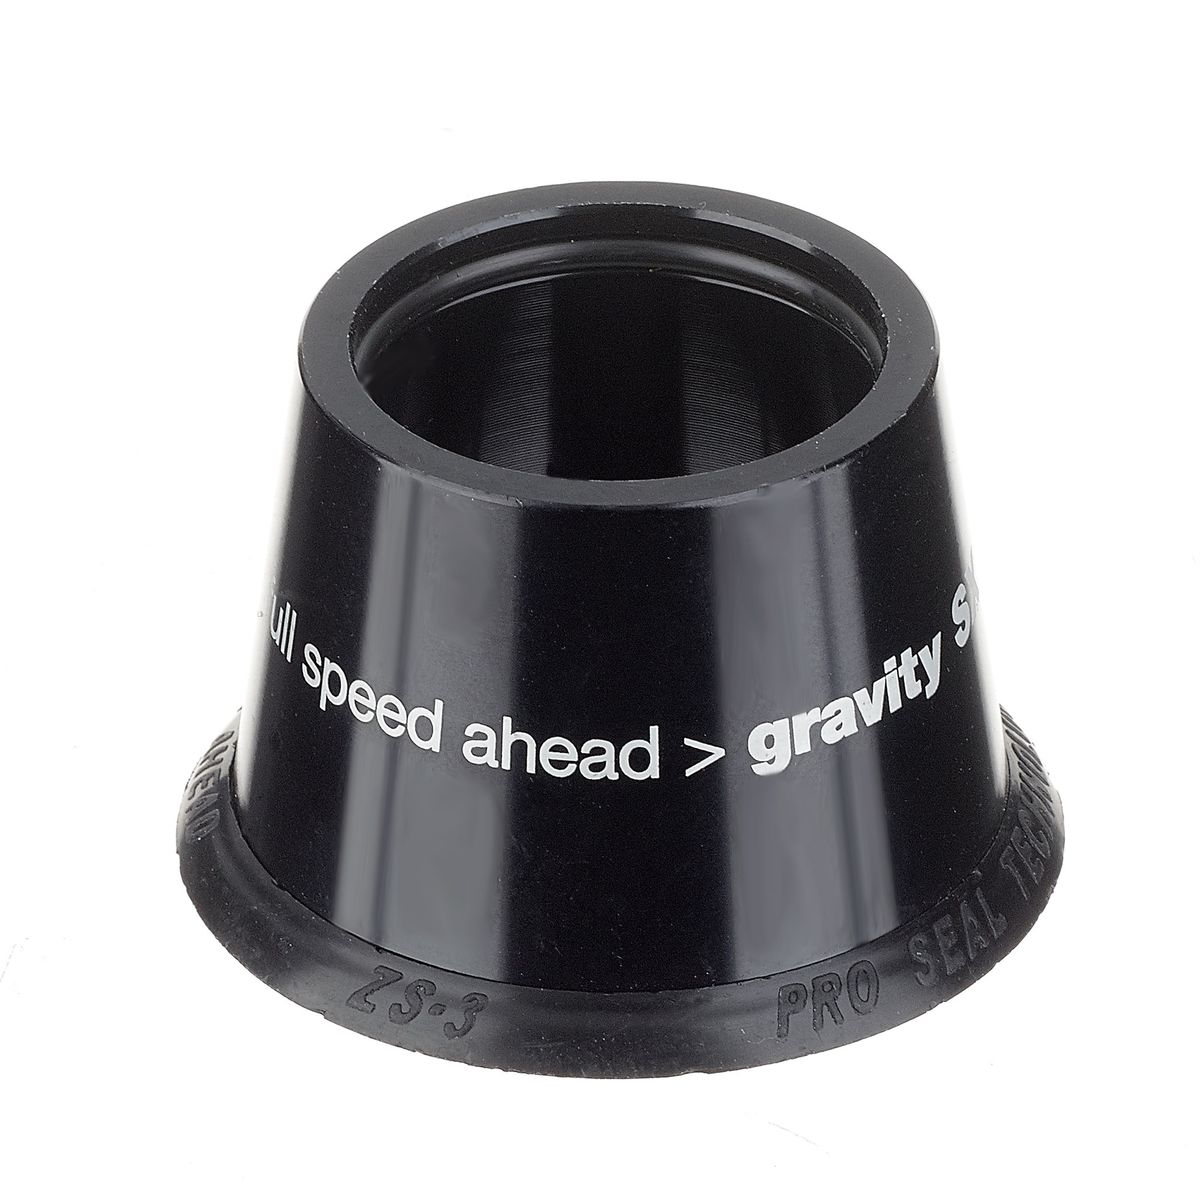 Headset Cap for Gravity SX Pro 55